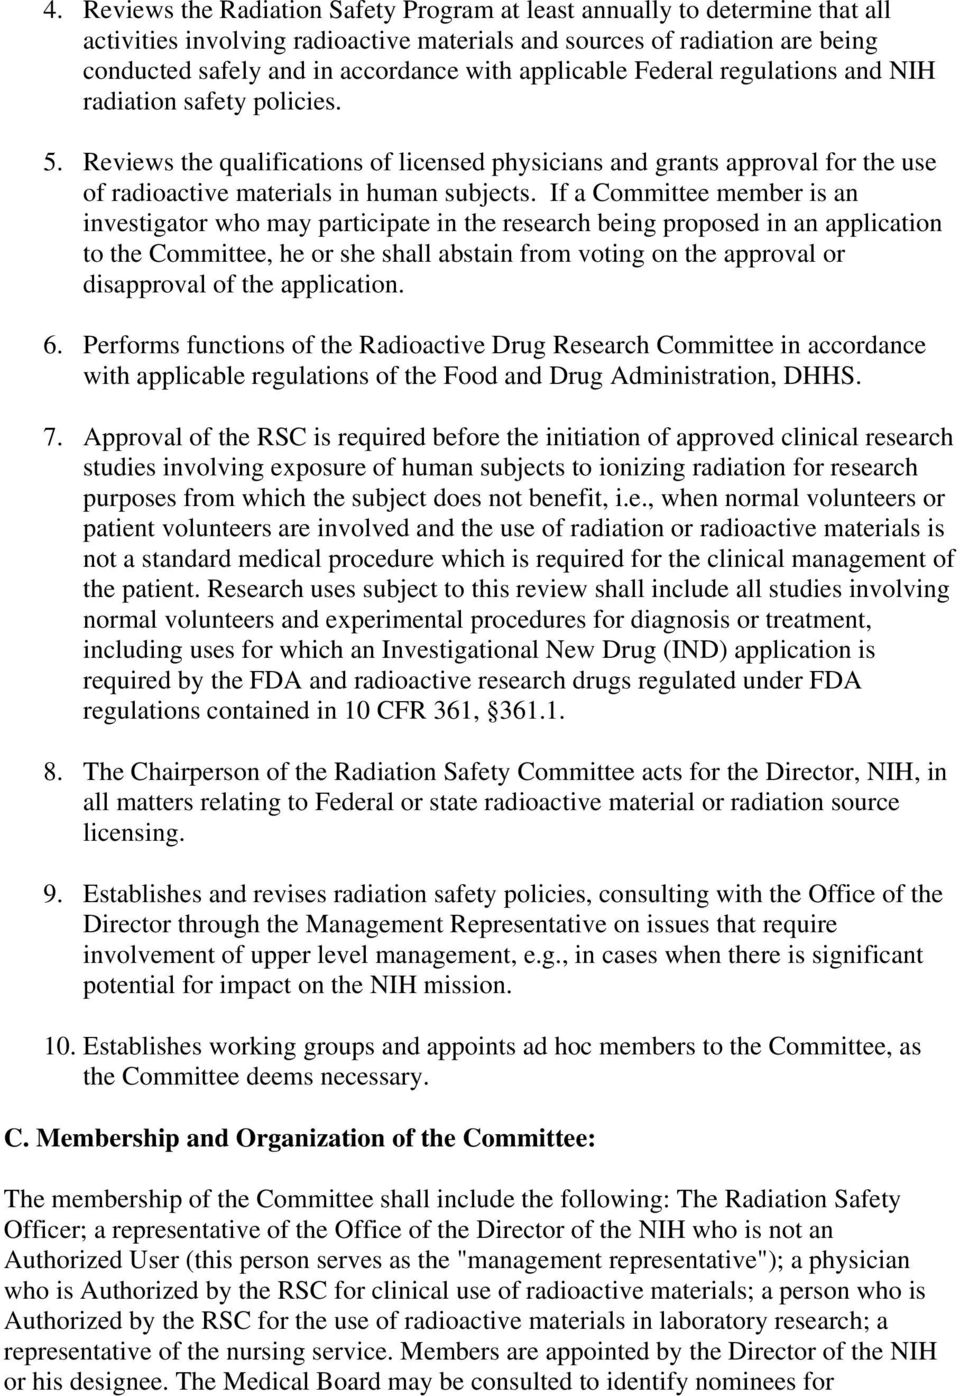 If a Committee member is an investigator who may participate in the research being proposed in an application to the Committee, he or she shall abstain from voting on the approval or disapproval of